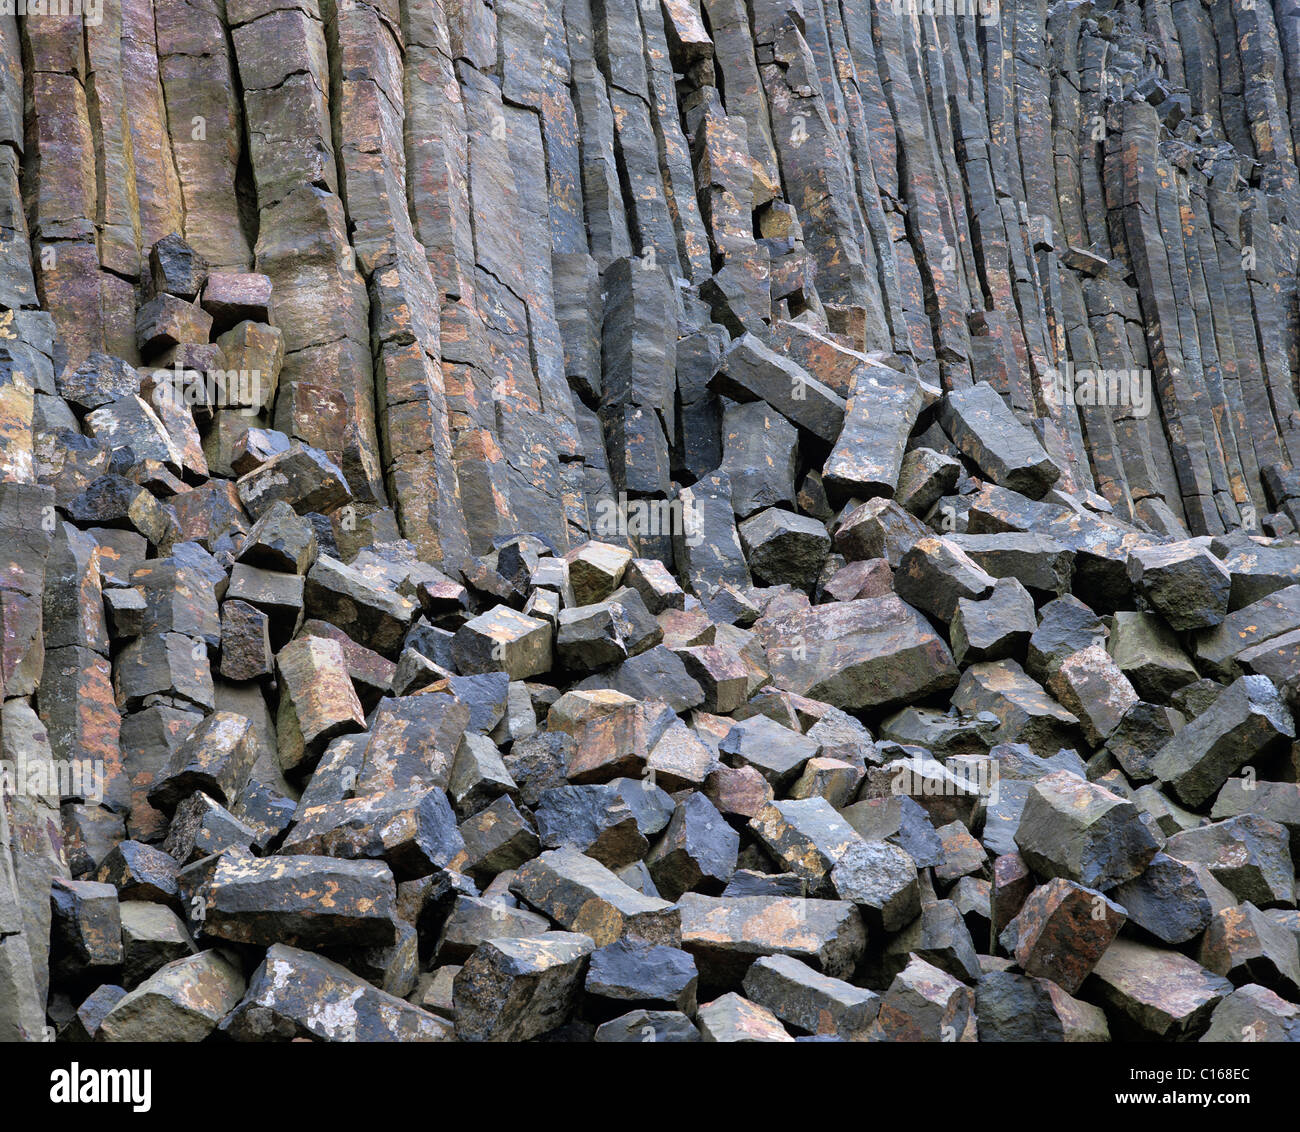 Quarry, basalt stone quarry, basalt array, basalt columns behind - Stock Image